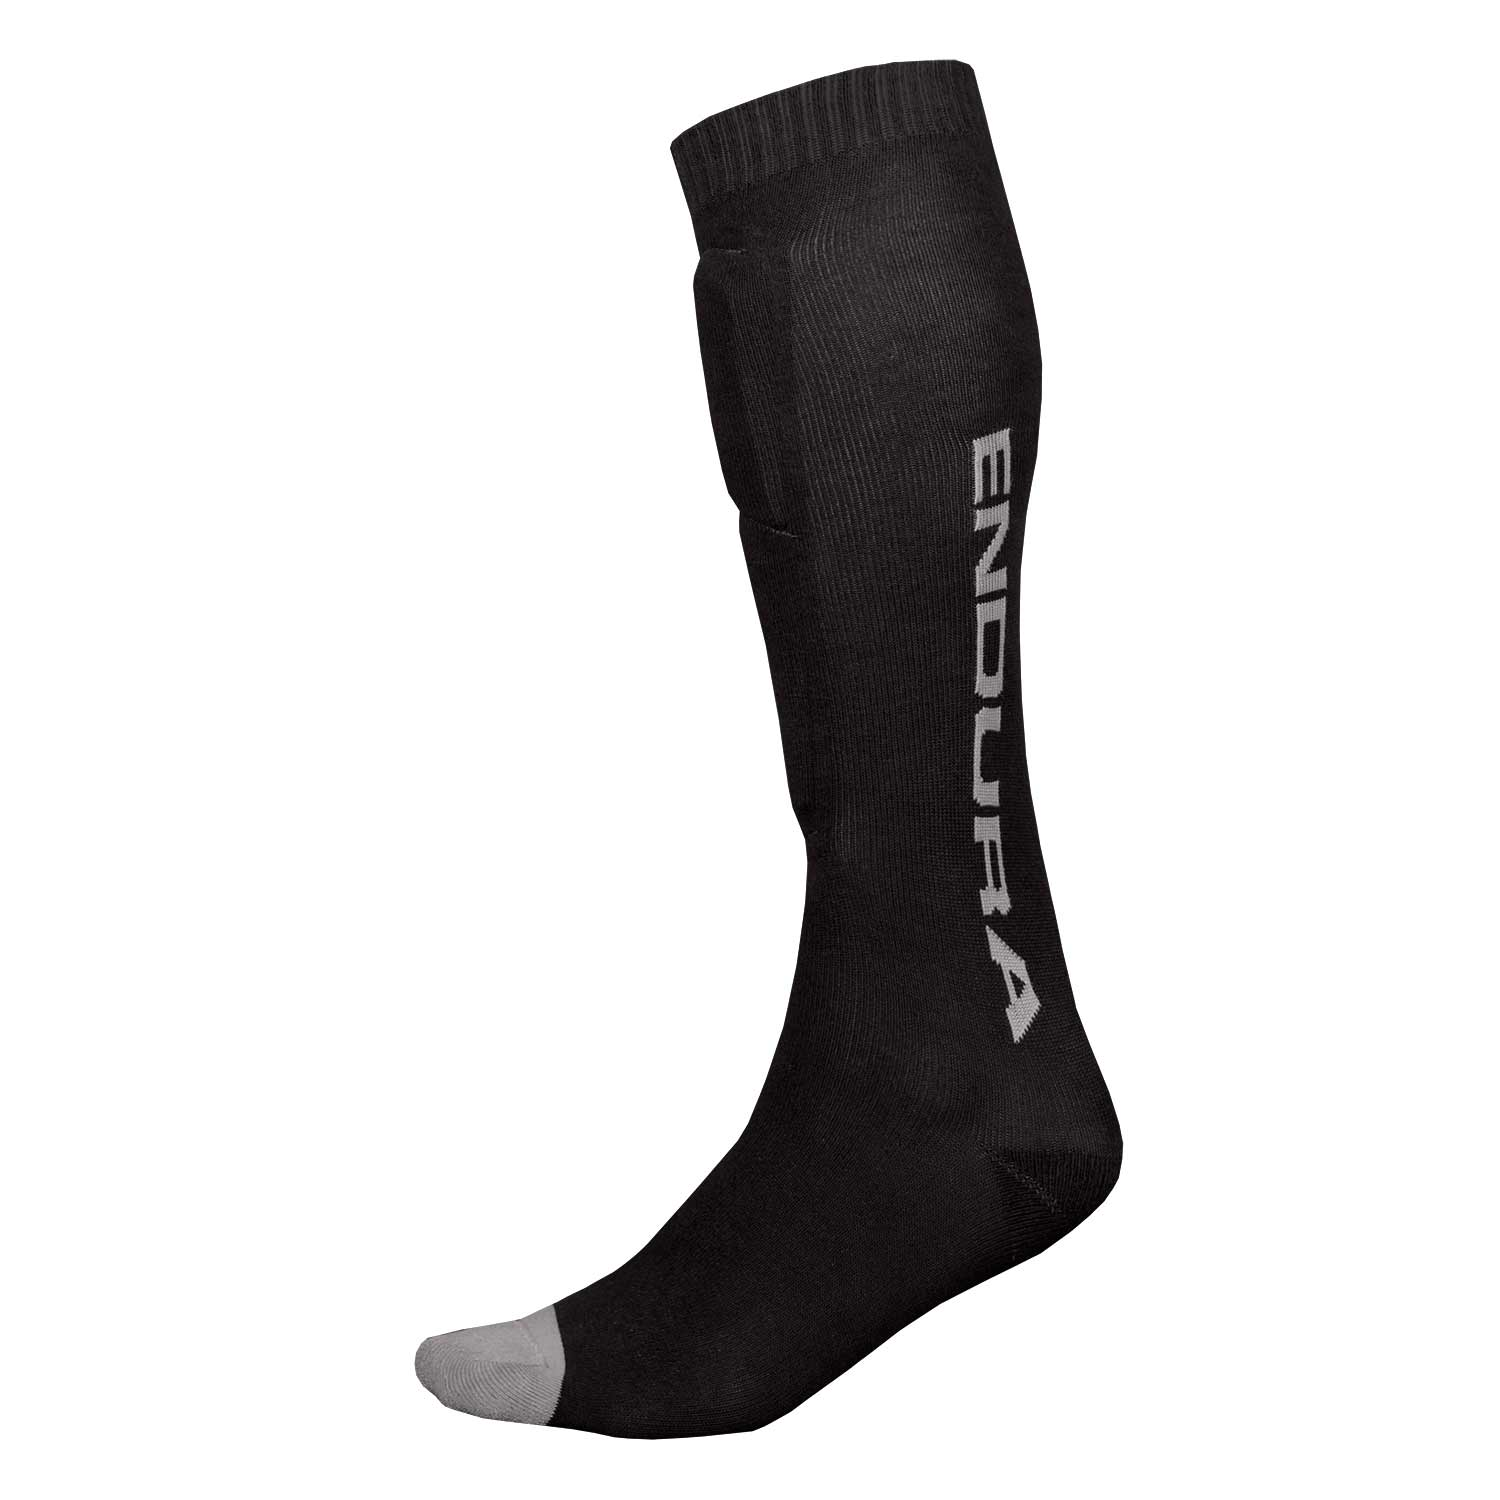 Endura Singletrack Shin Guard Sokk